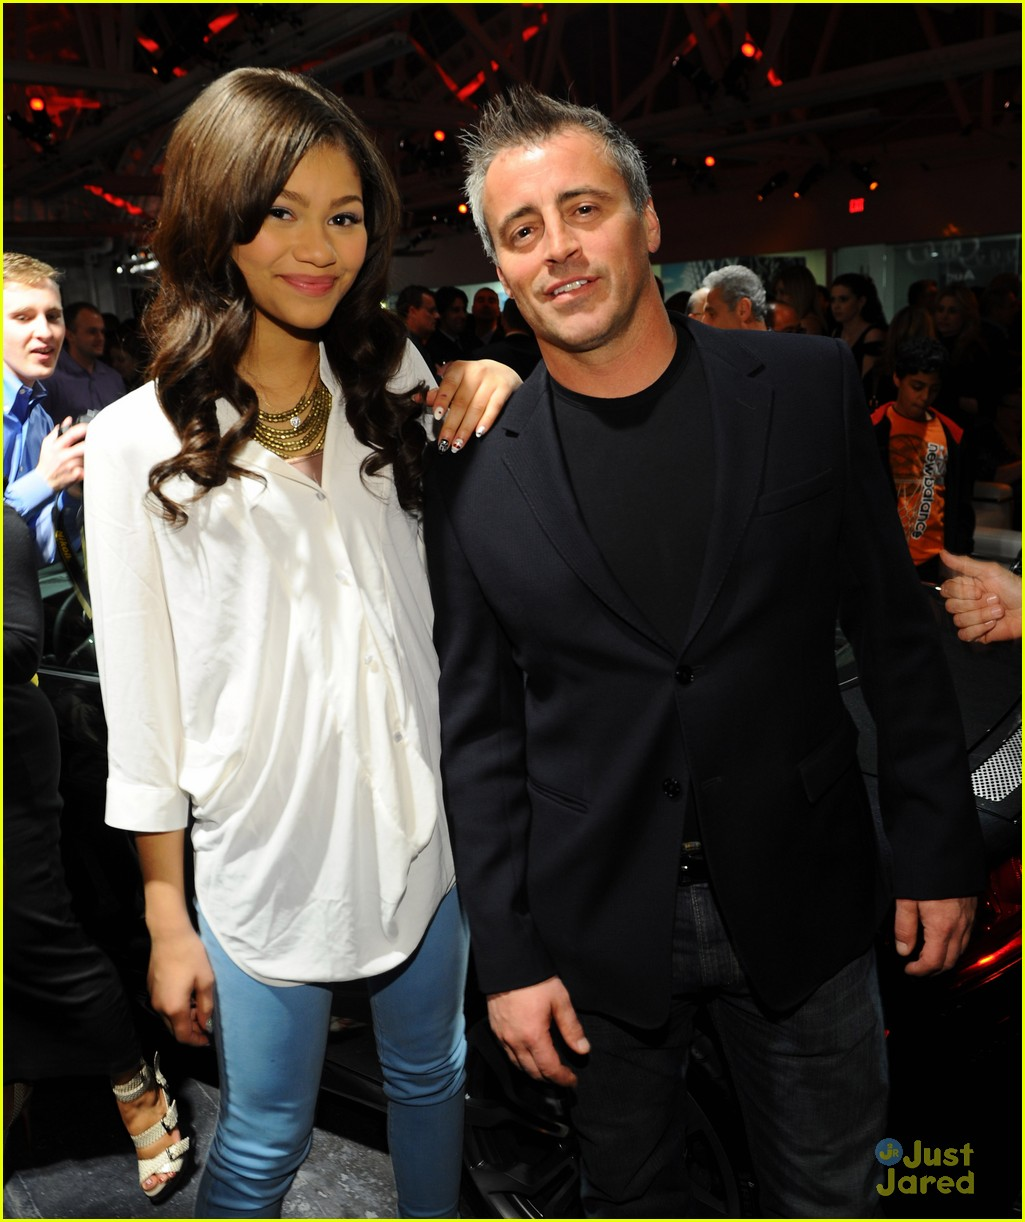 Zendaya Opens Audi Beverly Hills Photo Photo Gallery - Audi beverly hills